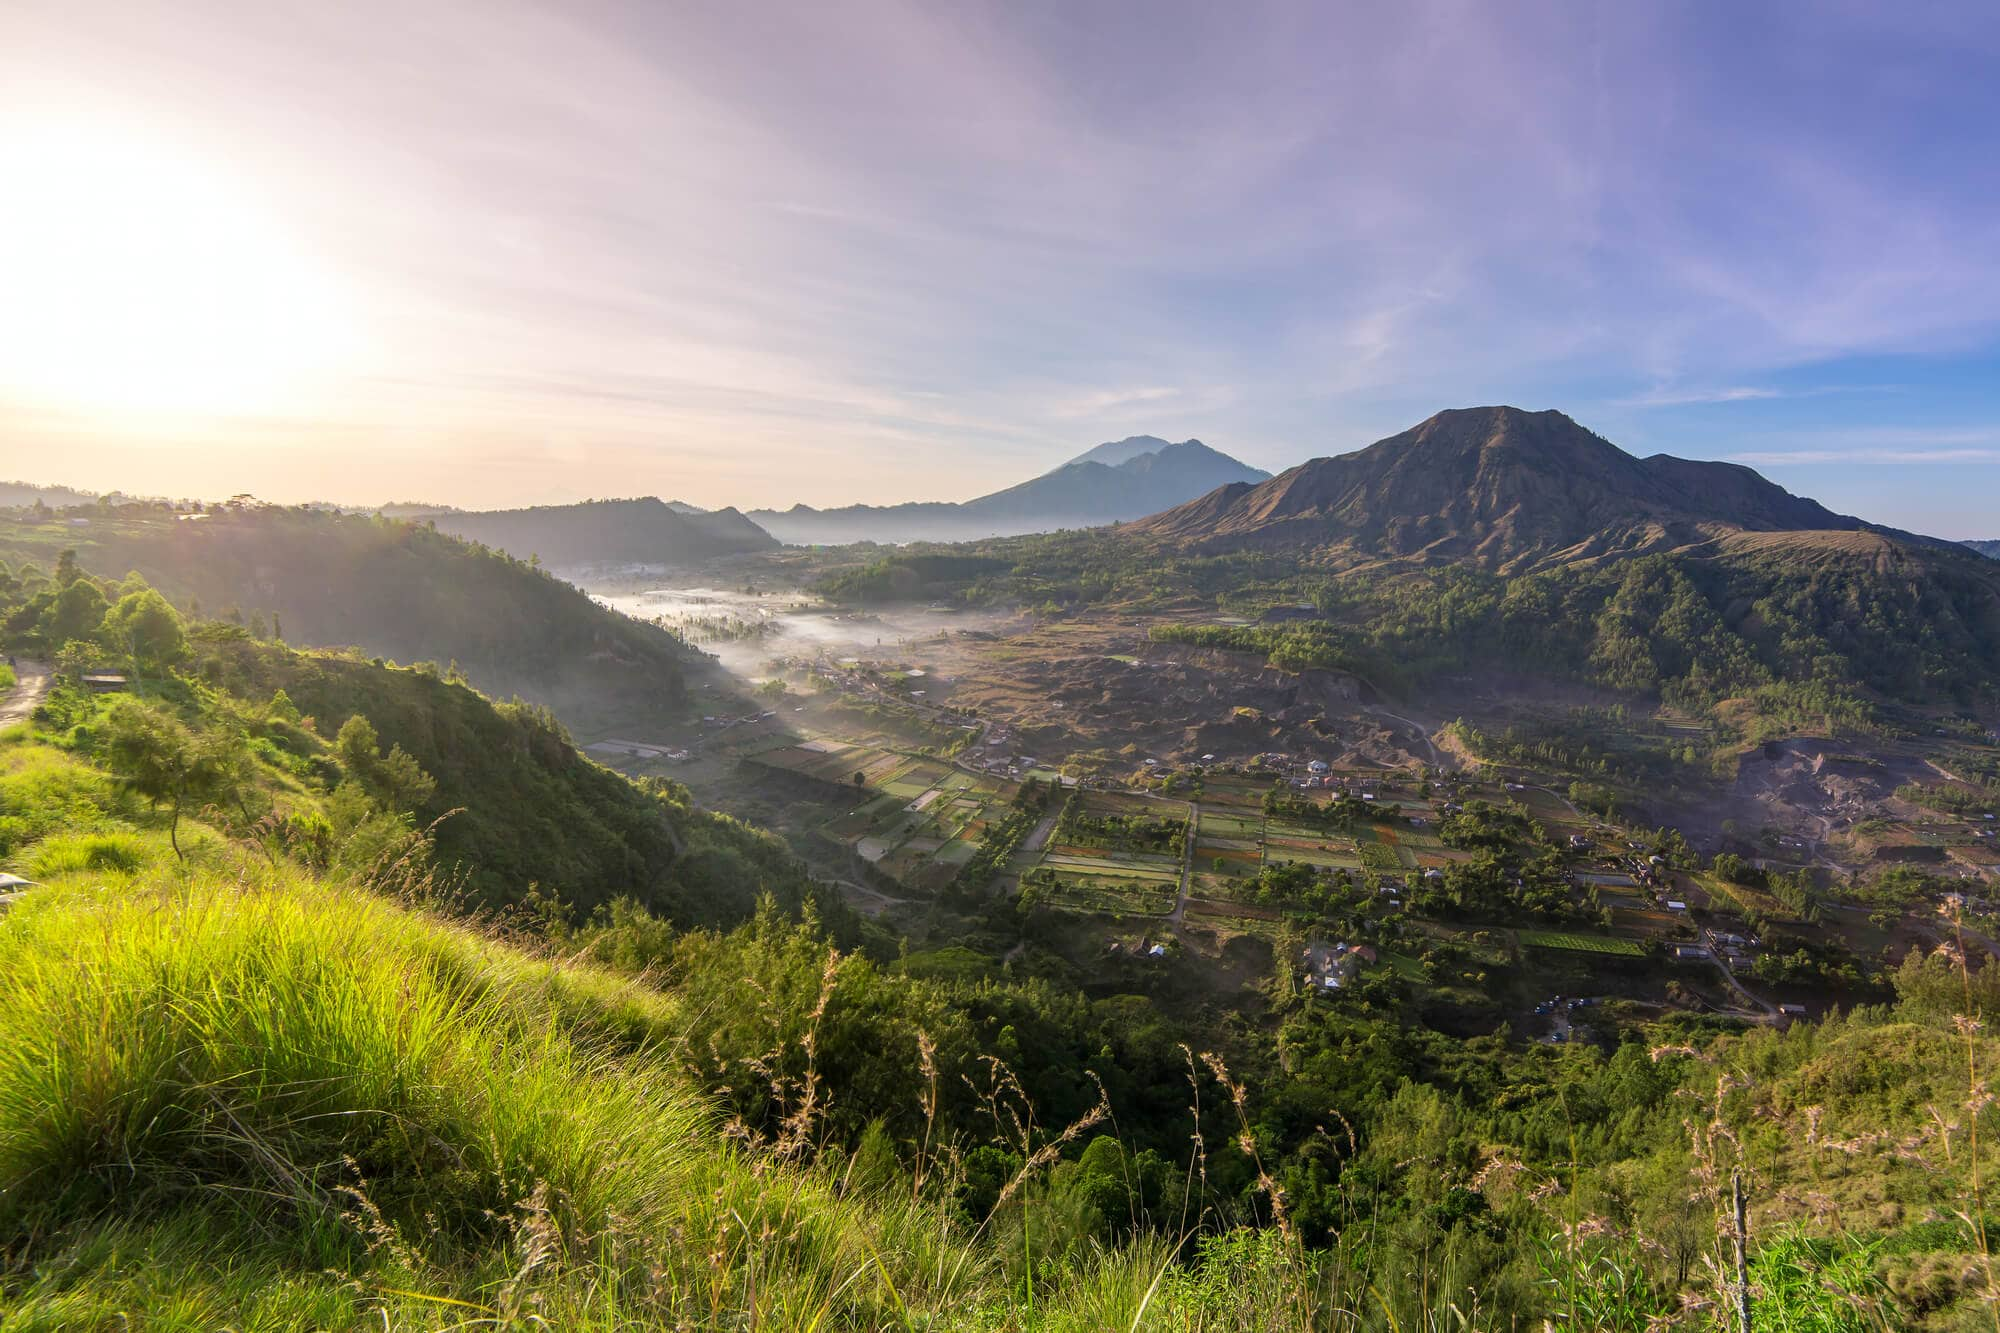 Pinggan Village - Discover one of Bali's best sunrise viewpoints